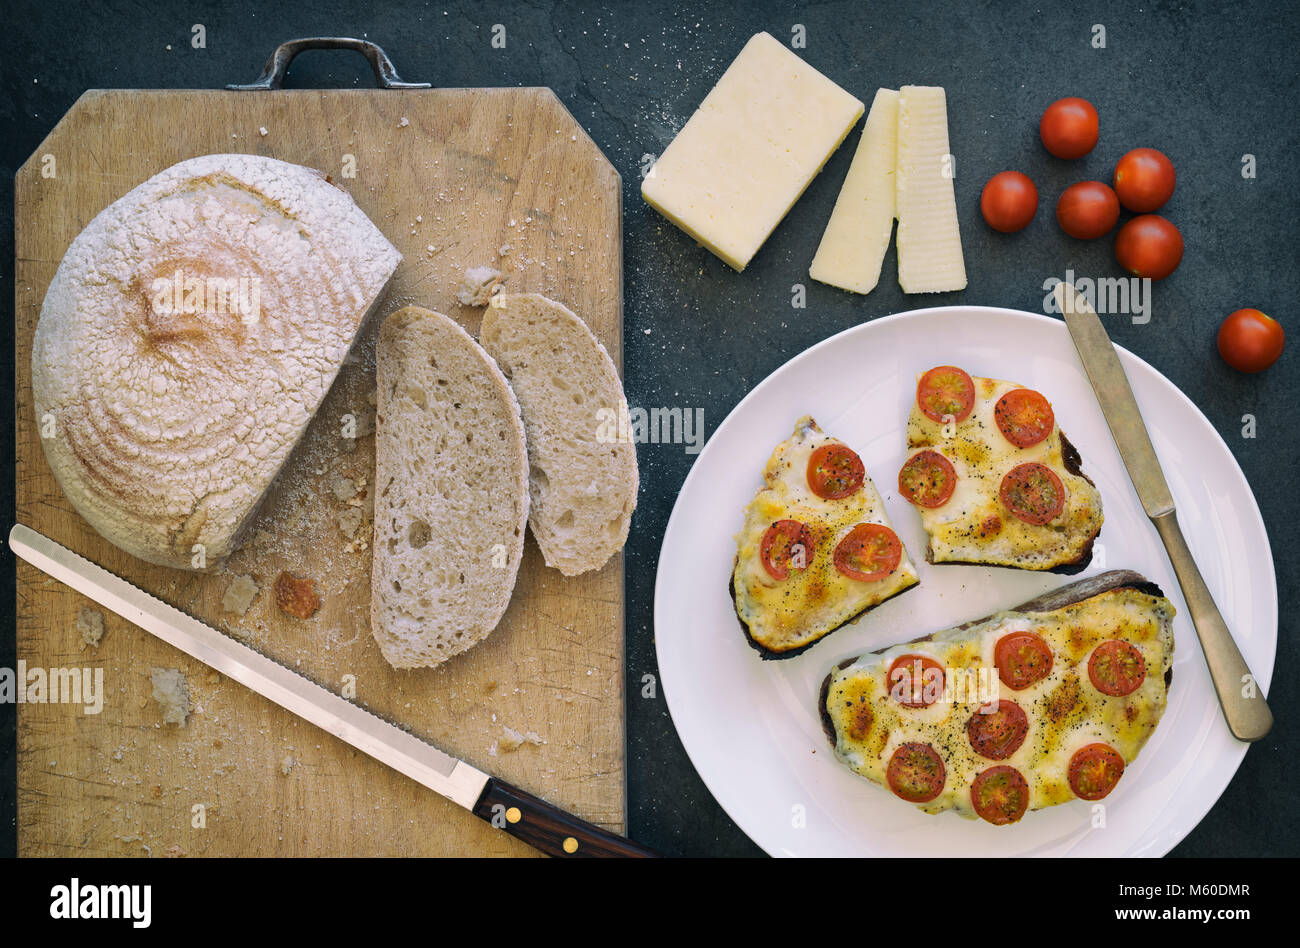 Cheese on toast. Cheese and tomatoes on toasted rye bread with a slate background Stock Photo